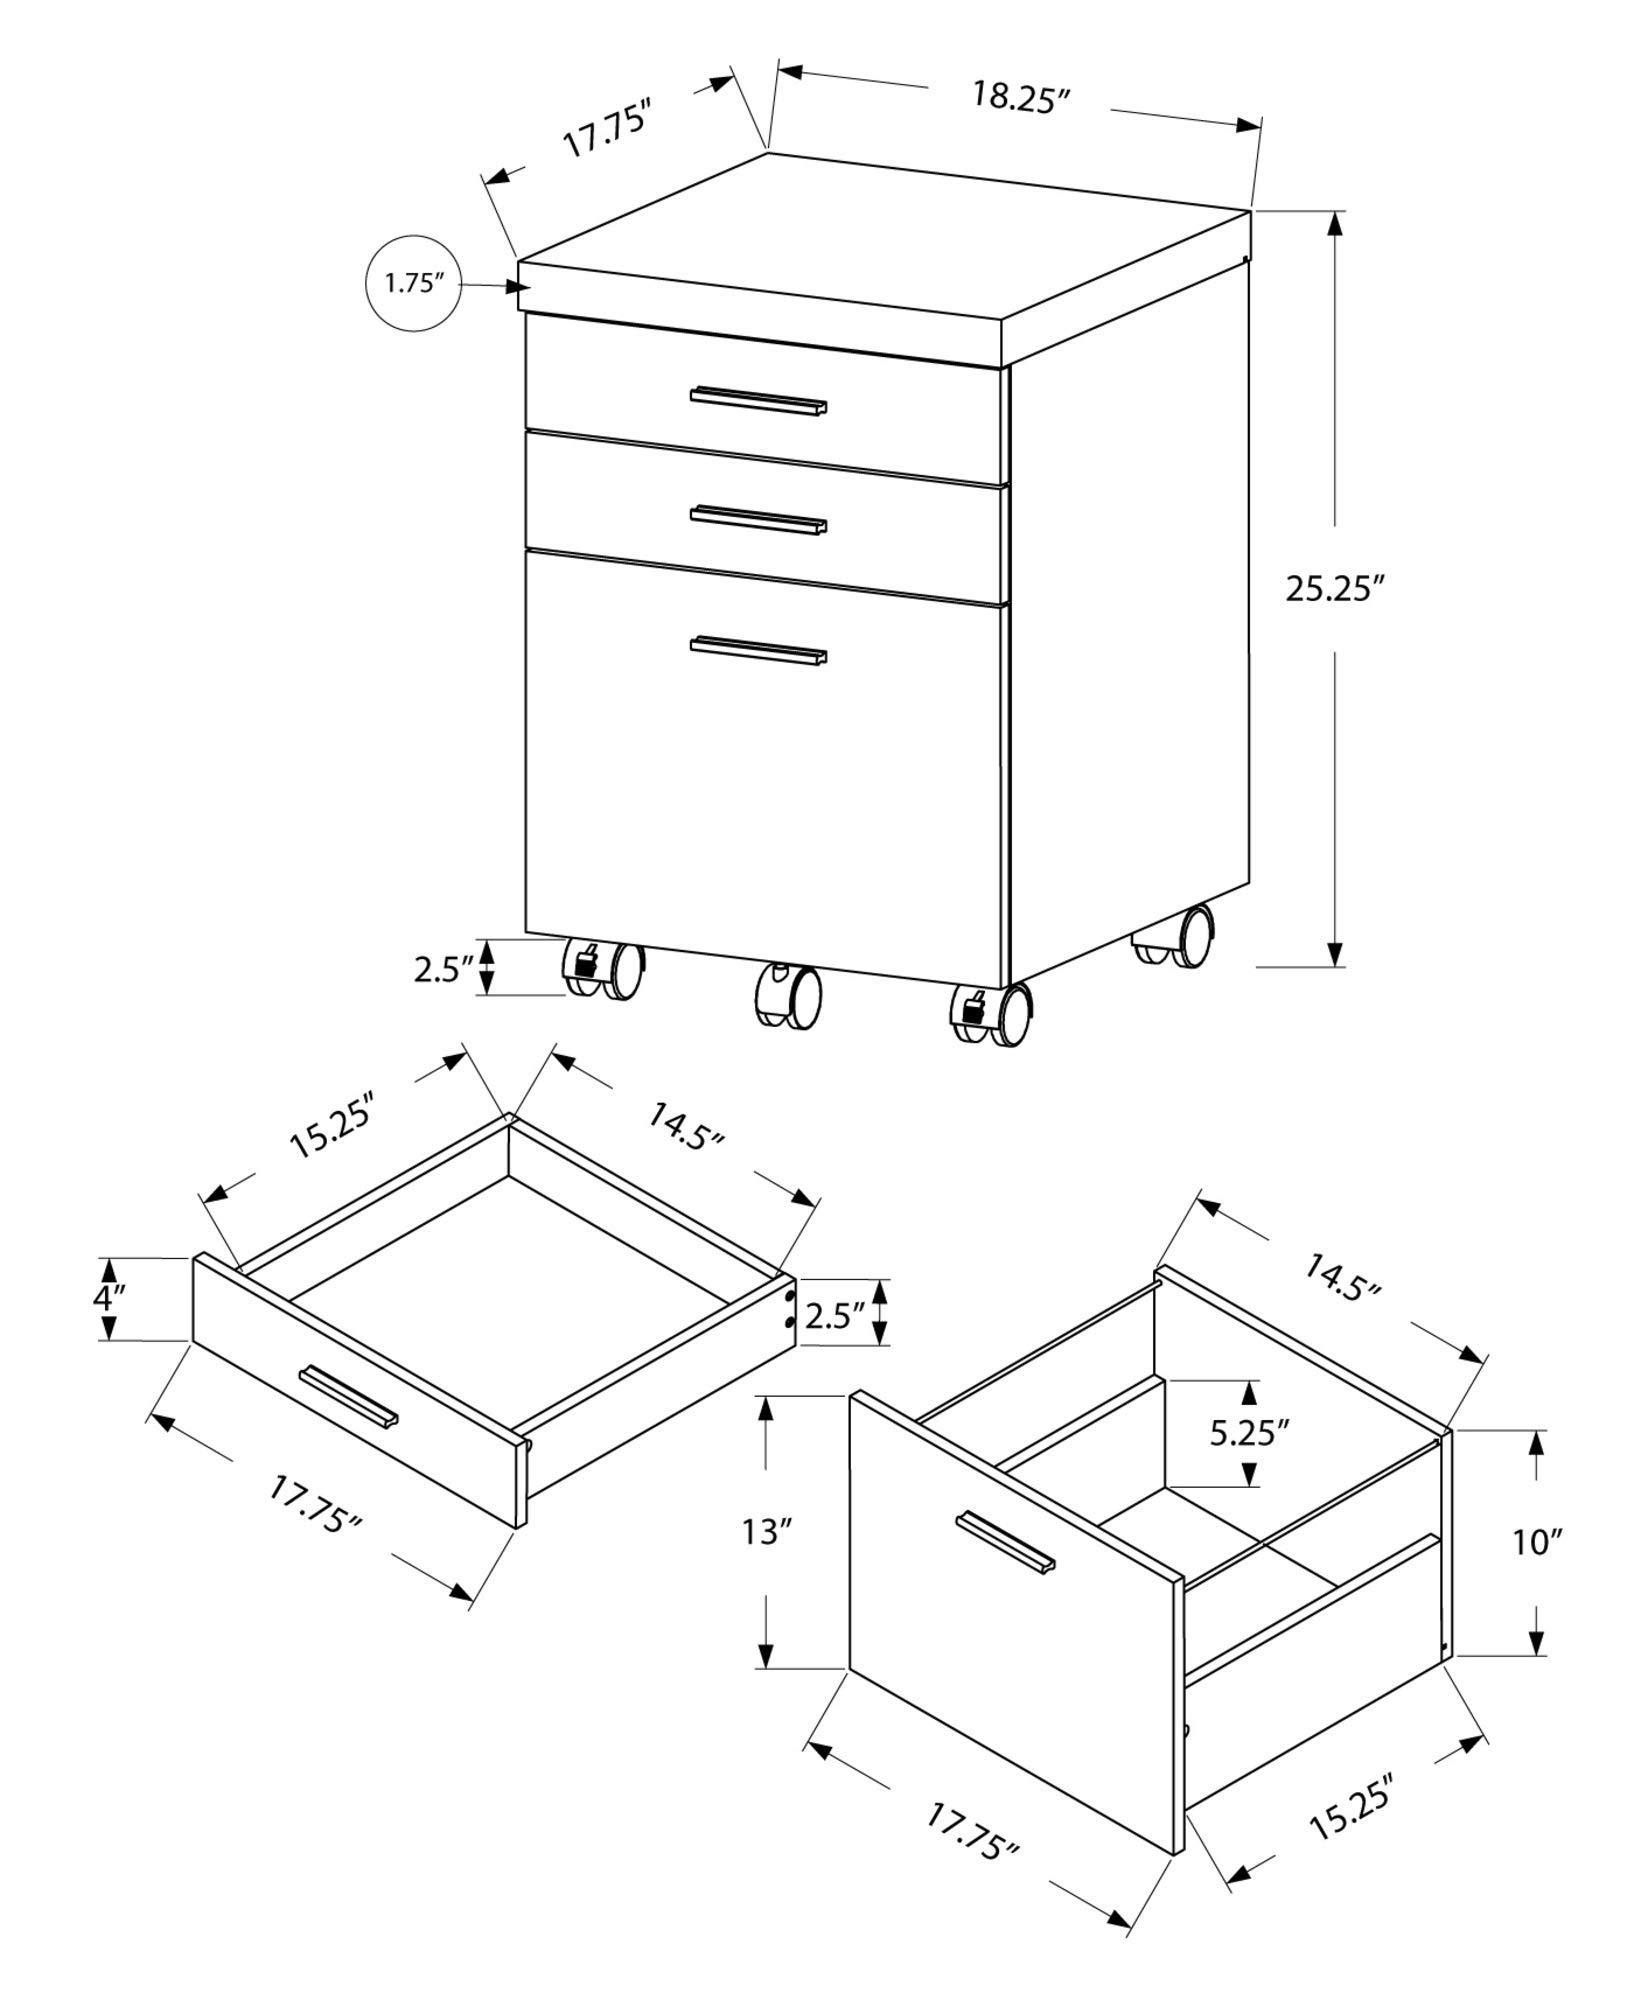 Monarch Specialties I I 7400 Filing Cabinet, Brown by Monarch Specialties (Image #2)